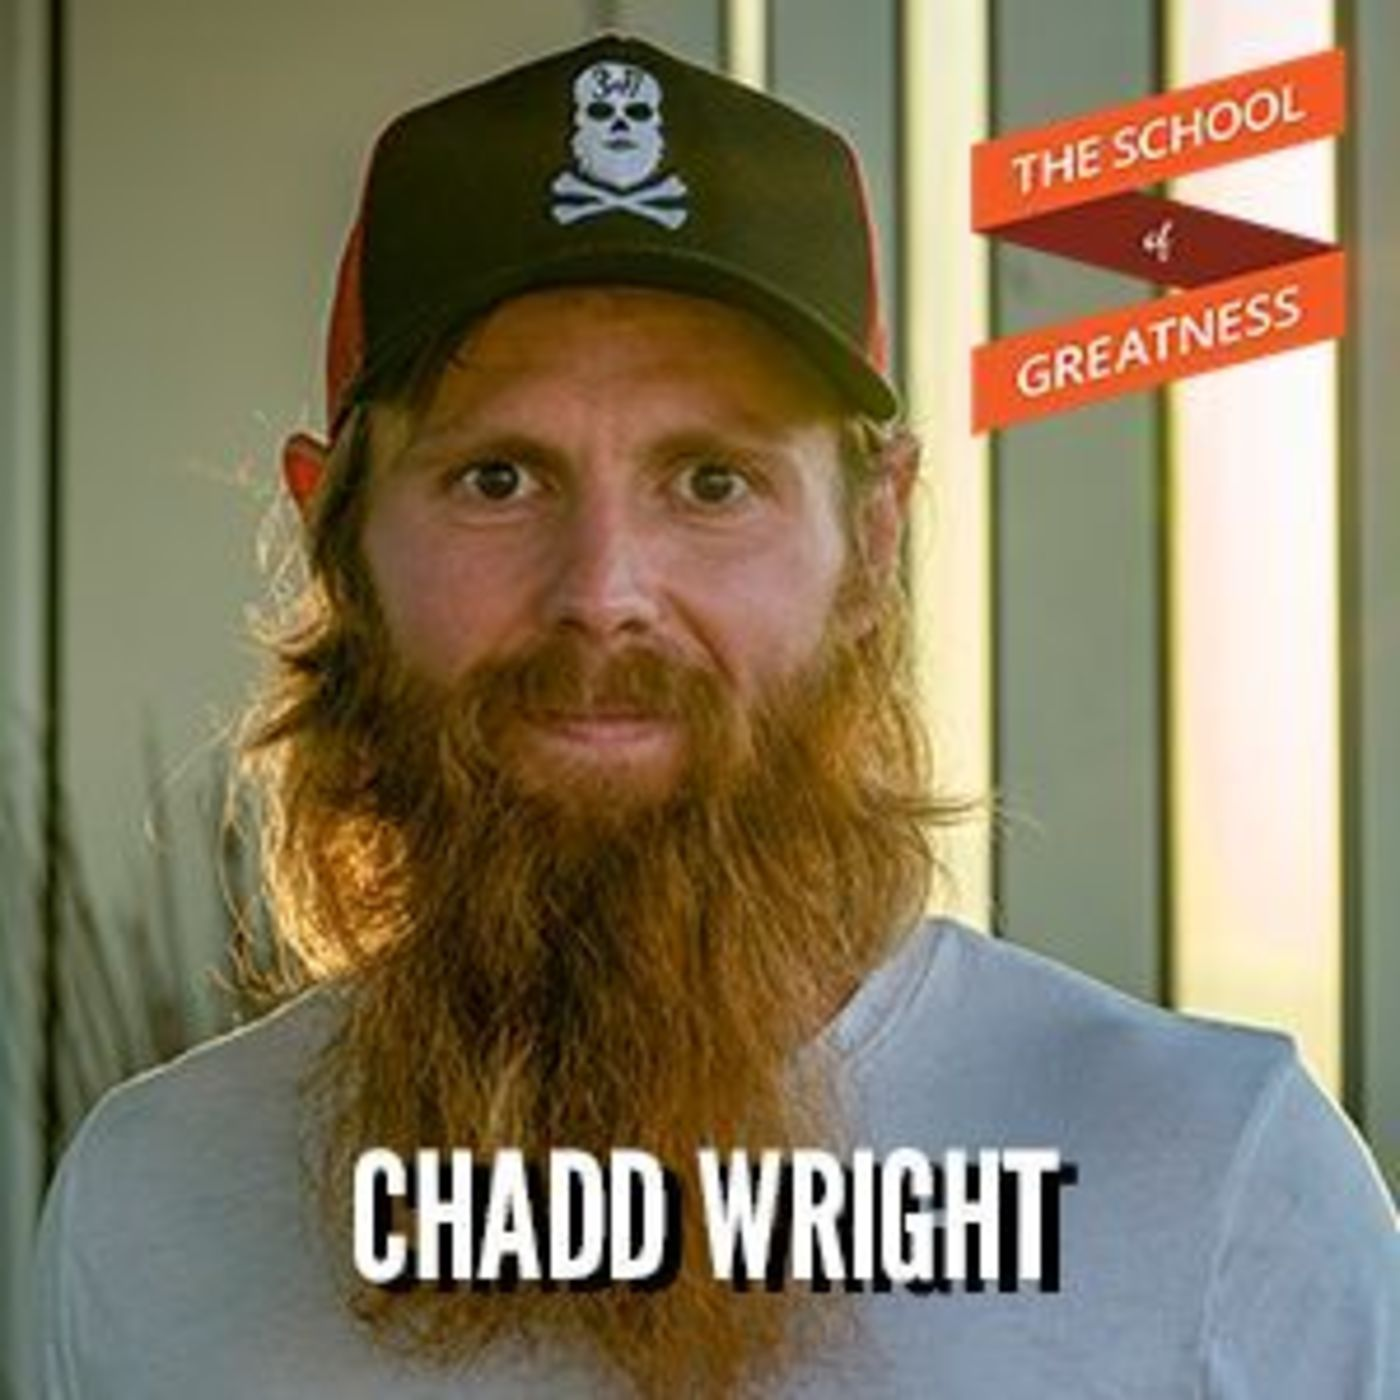 Navy Seal Mindset for Living Your Best Life with Chadd Wright